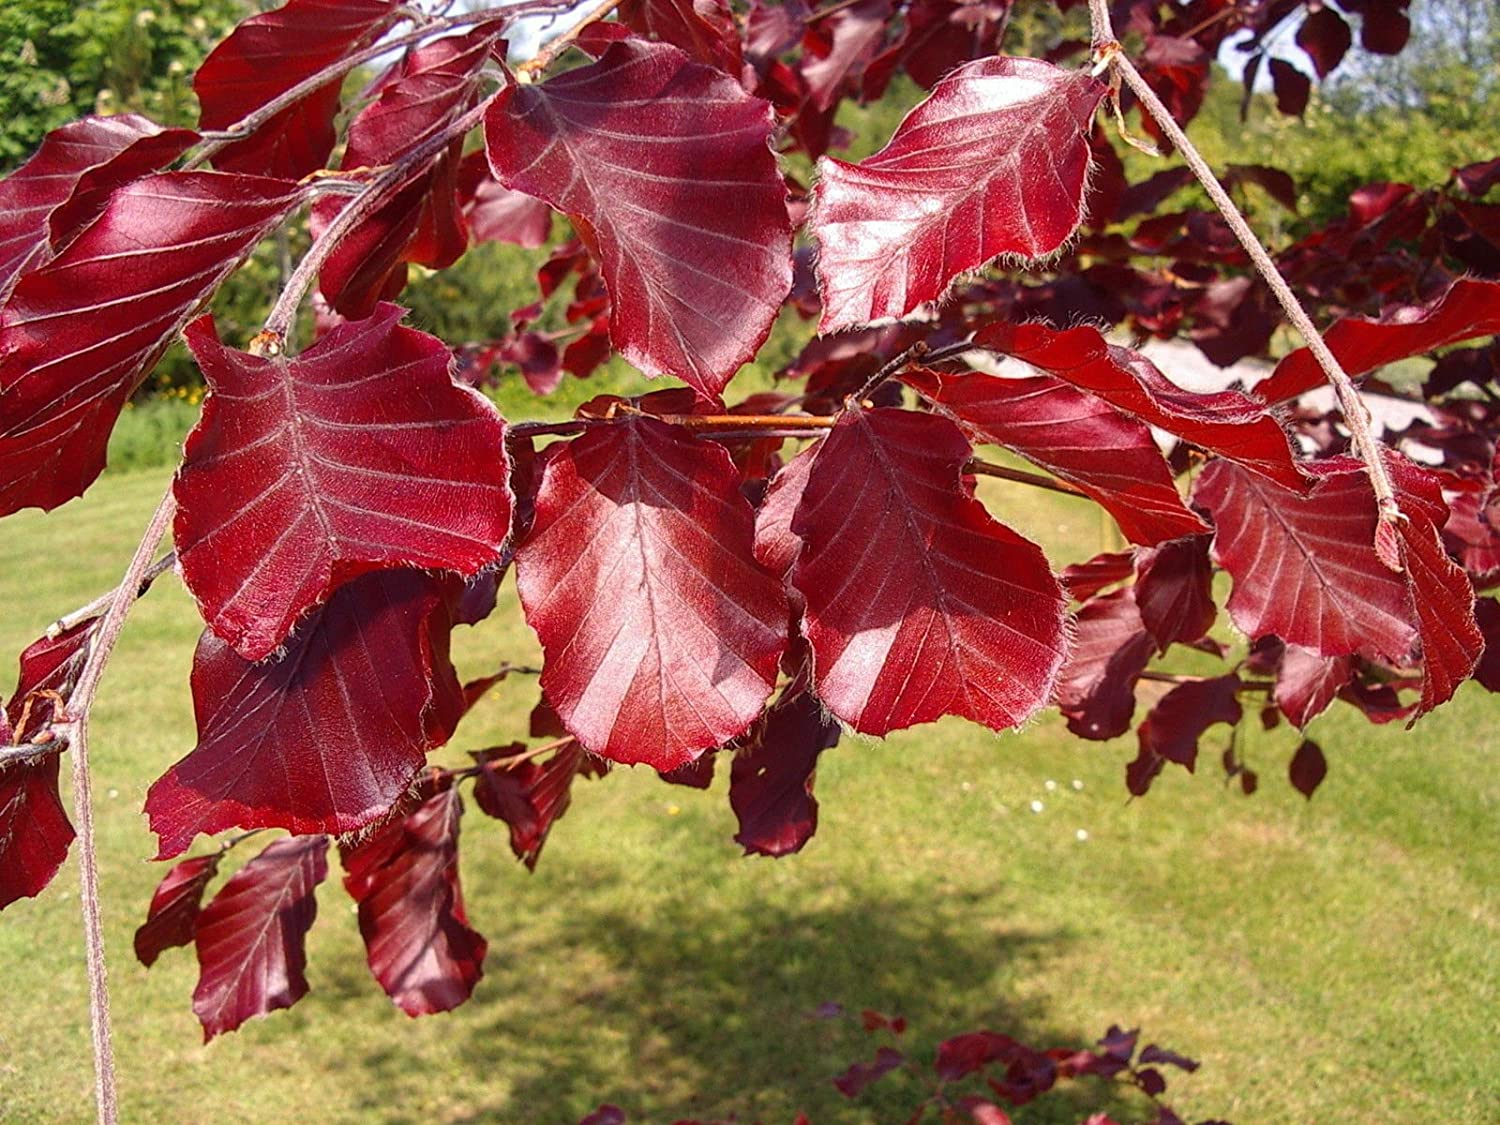 1 Copper Purple Beech 3-4ft Hedging Tree in 2L Pot, Stunning All Year Colour 3fatpigs® beechwoodtrees 3fatpigs®